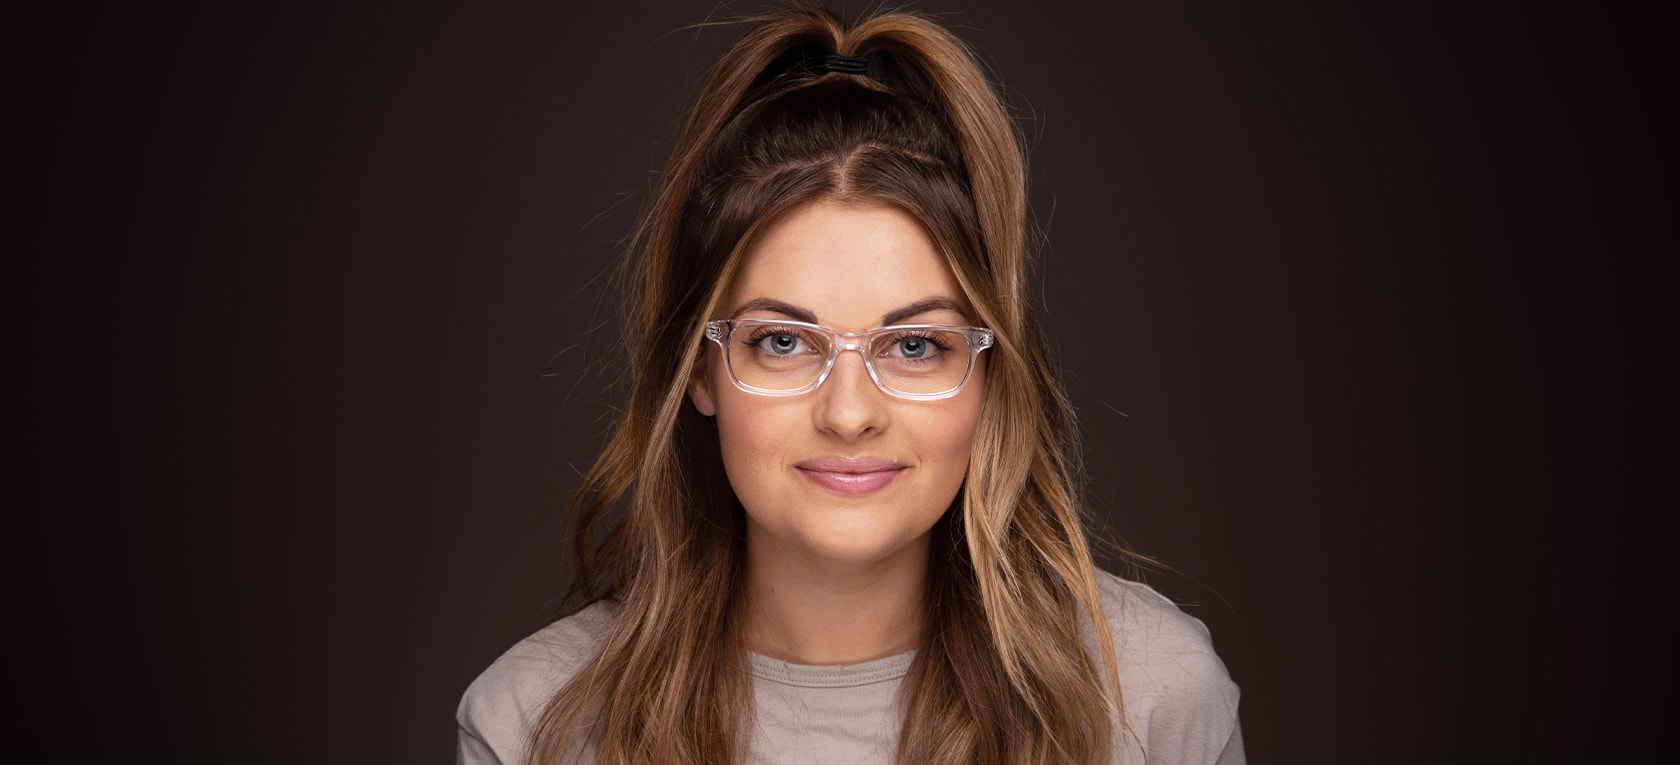 Image of model wearing Maddox frames